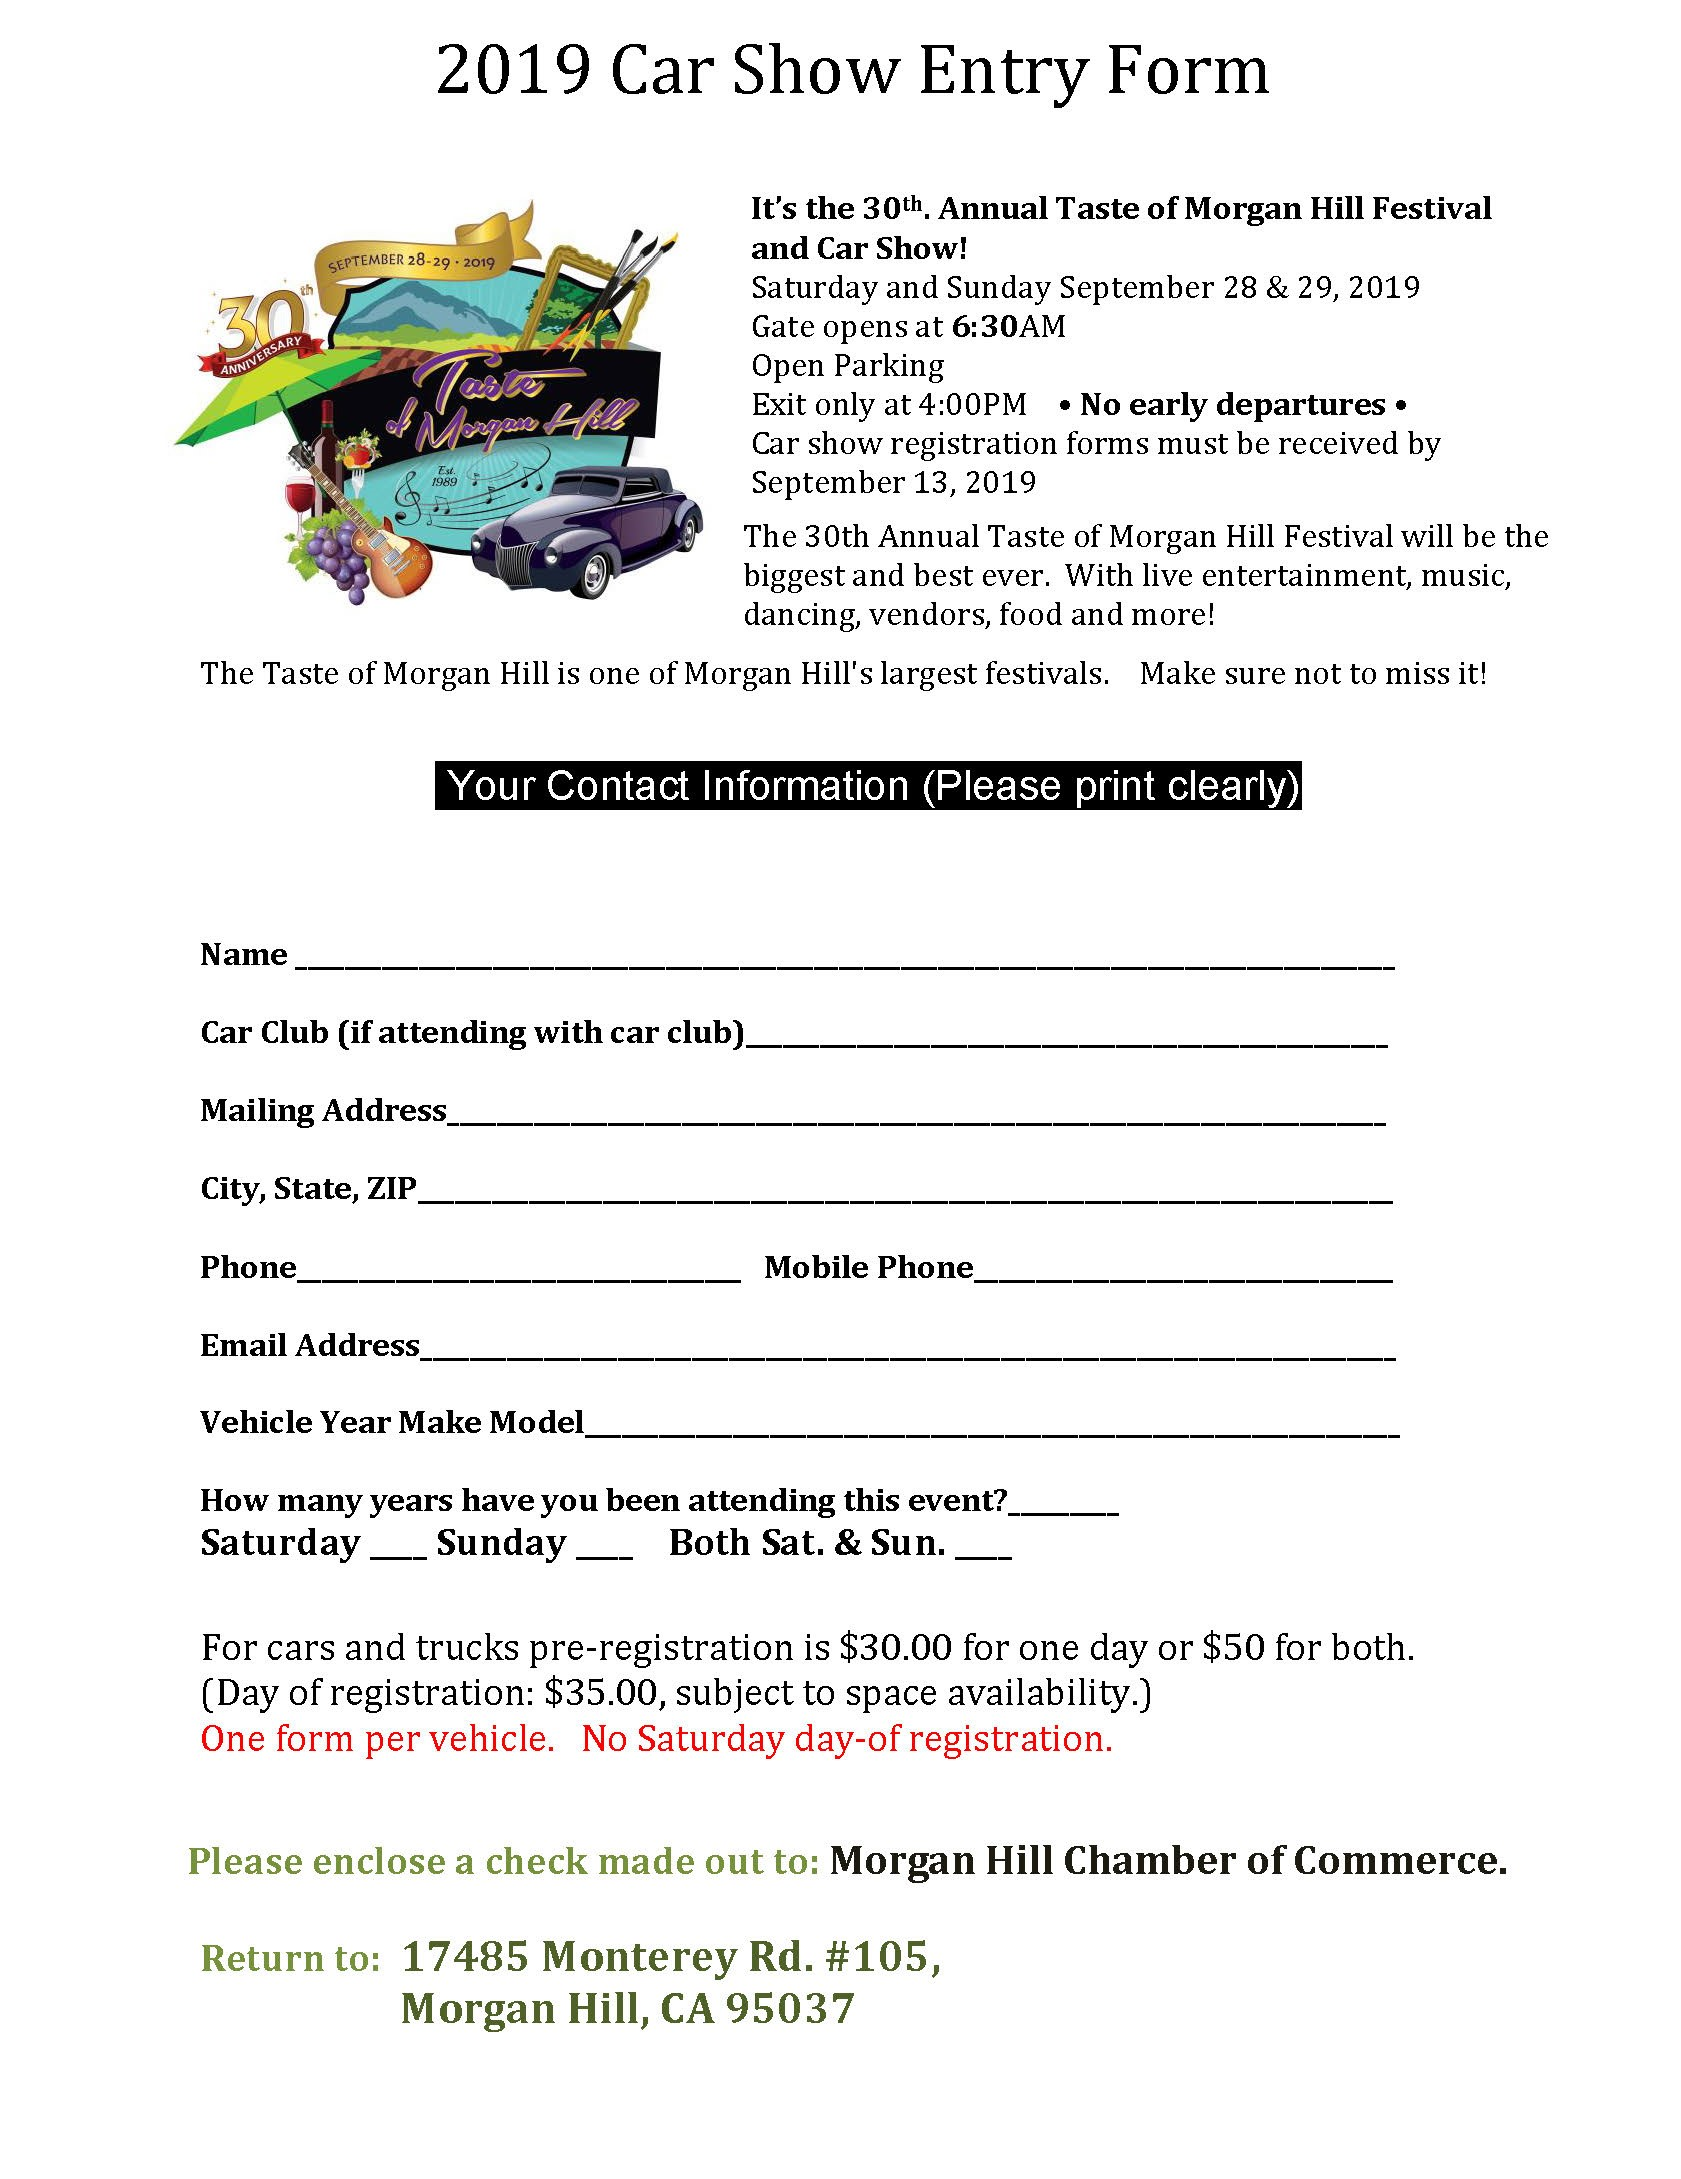 The 30th Annual Taste Car Show Entry Form